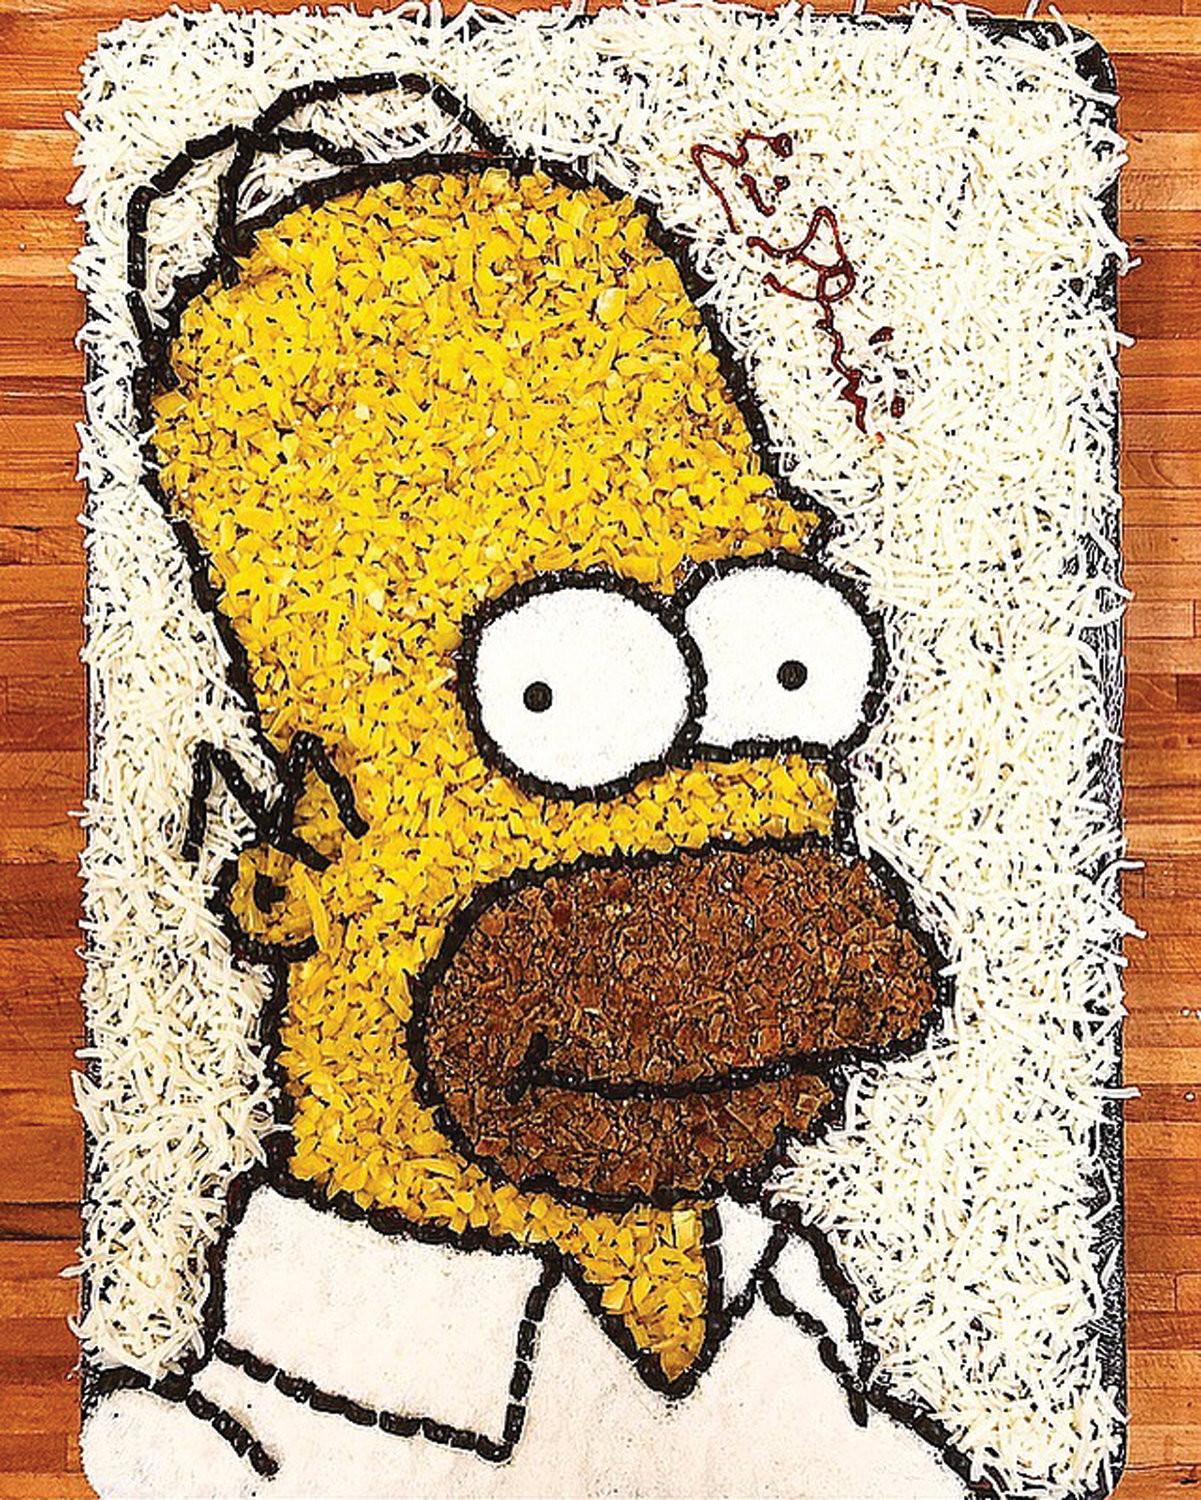 PIZZA 'D'OH!' Homer Simpson is one of the many cartoon characters Eric Palmieri has perfected since beginning his custom pizza journey in 2017. He enjoys the challenge of requests from customers, and enjoys assembling intricate designs.